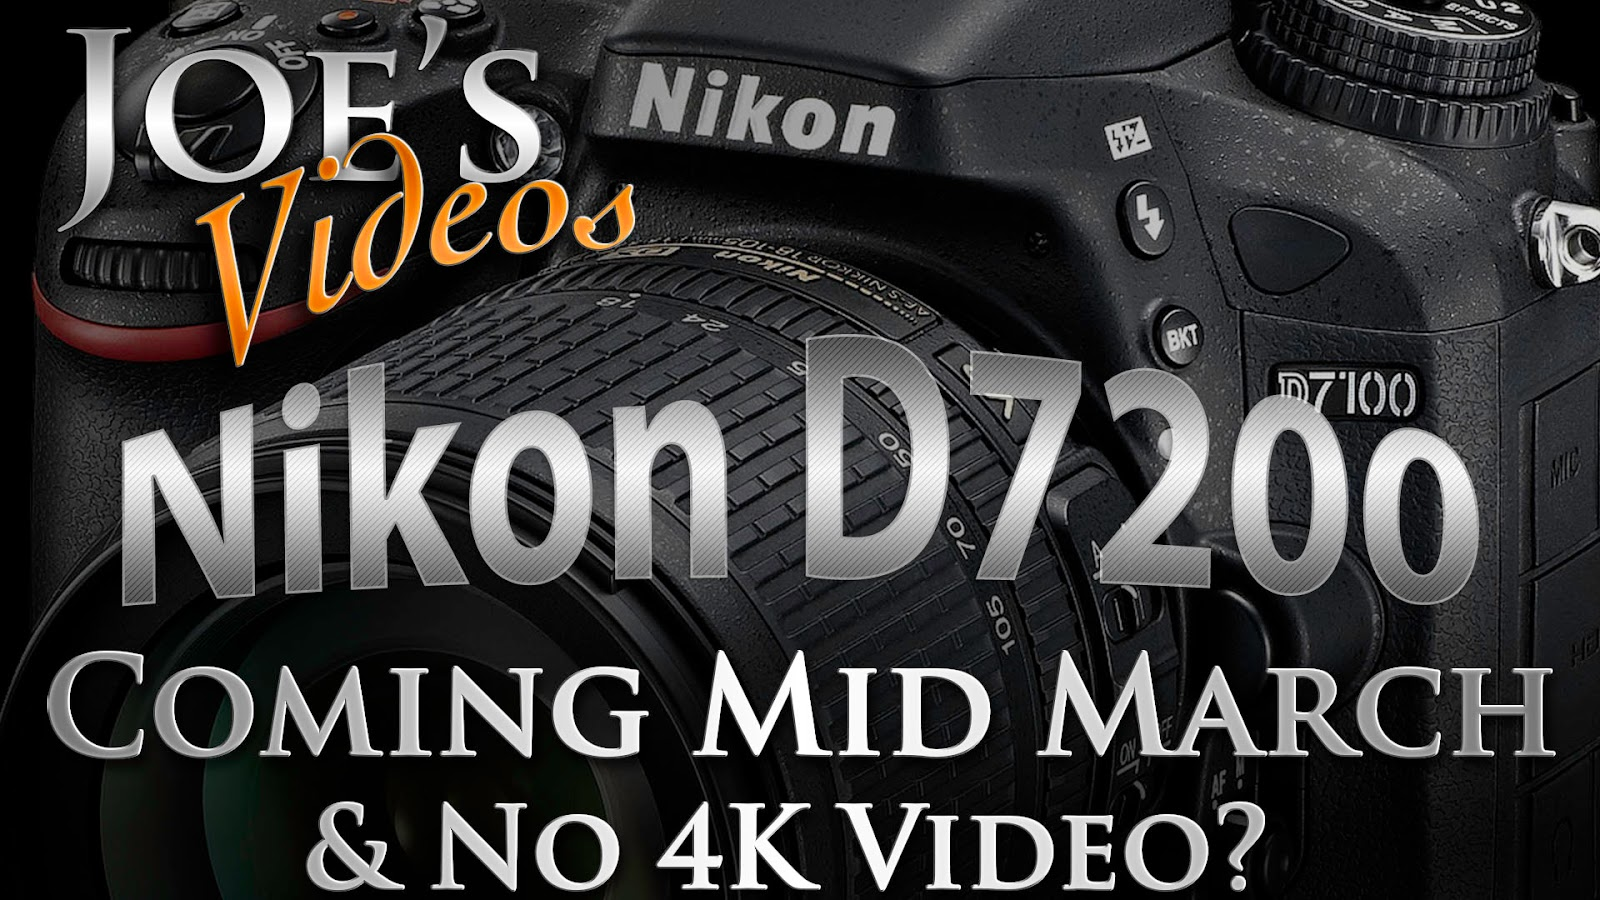 Nikon D7200 Coming Mid March & No 4k Video? | Joe's Videos